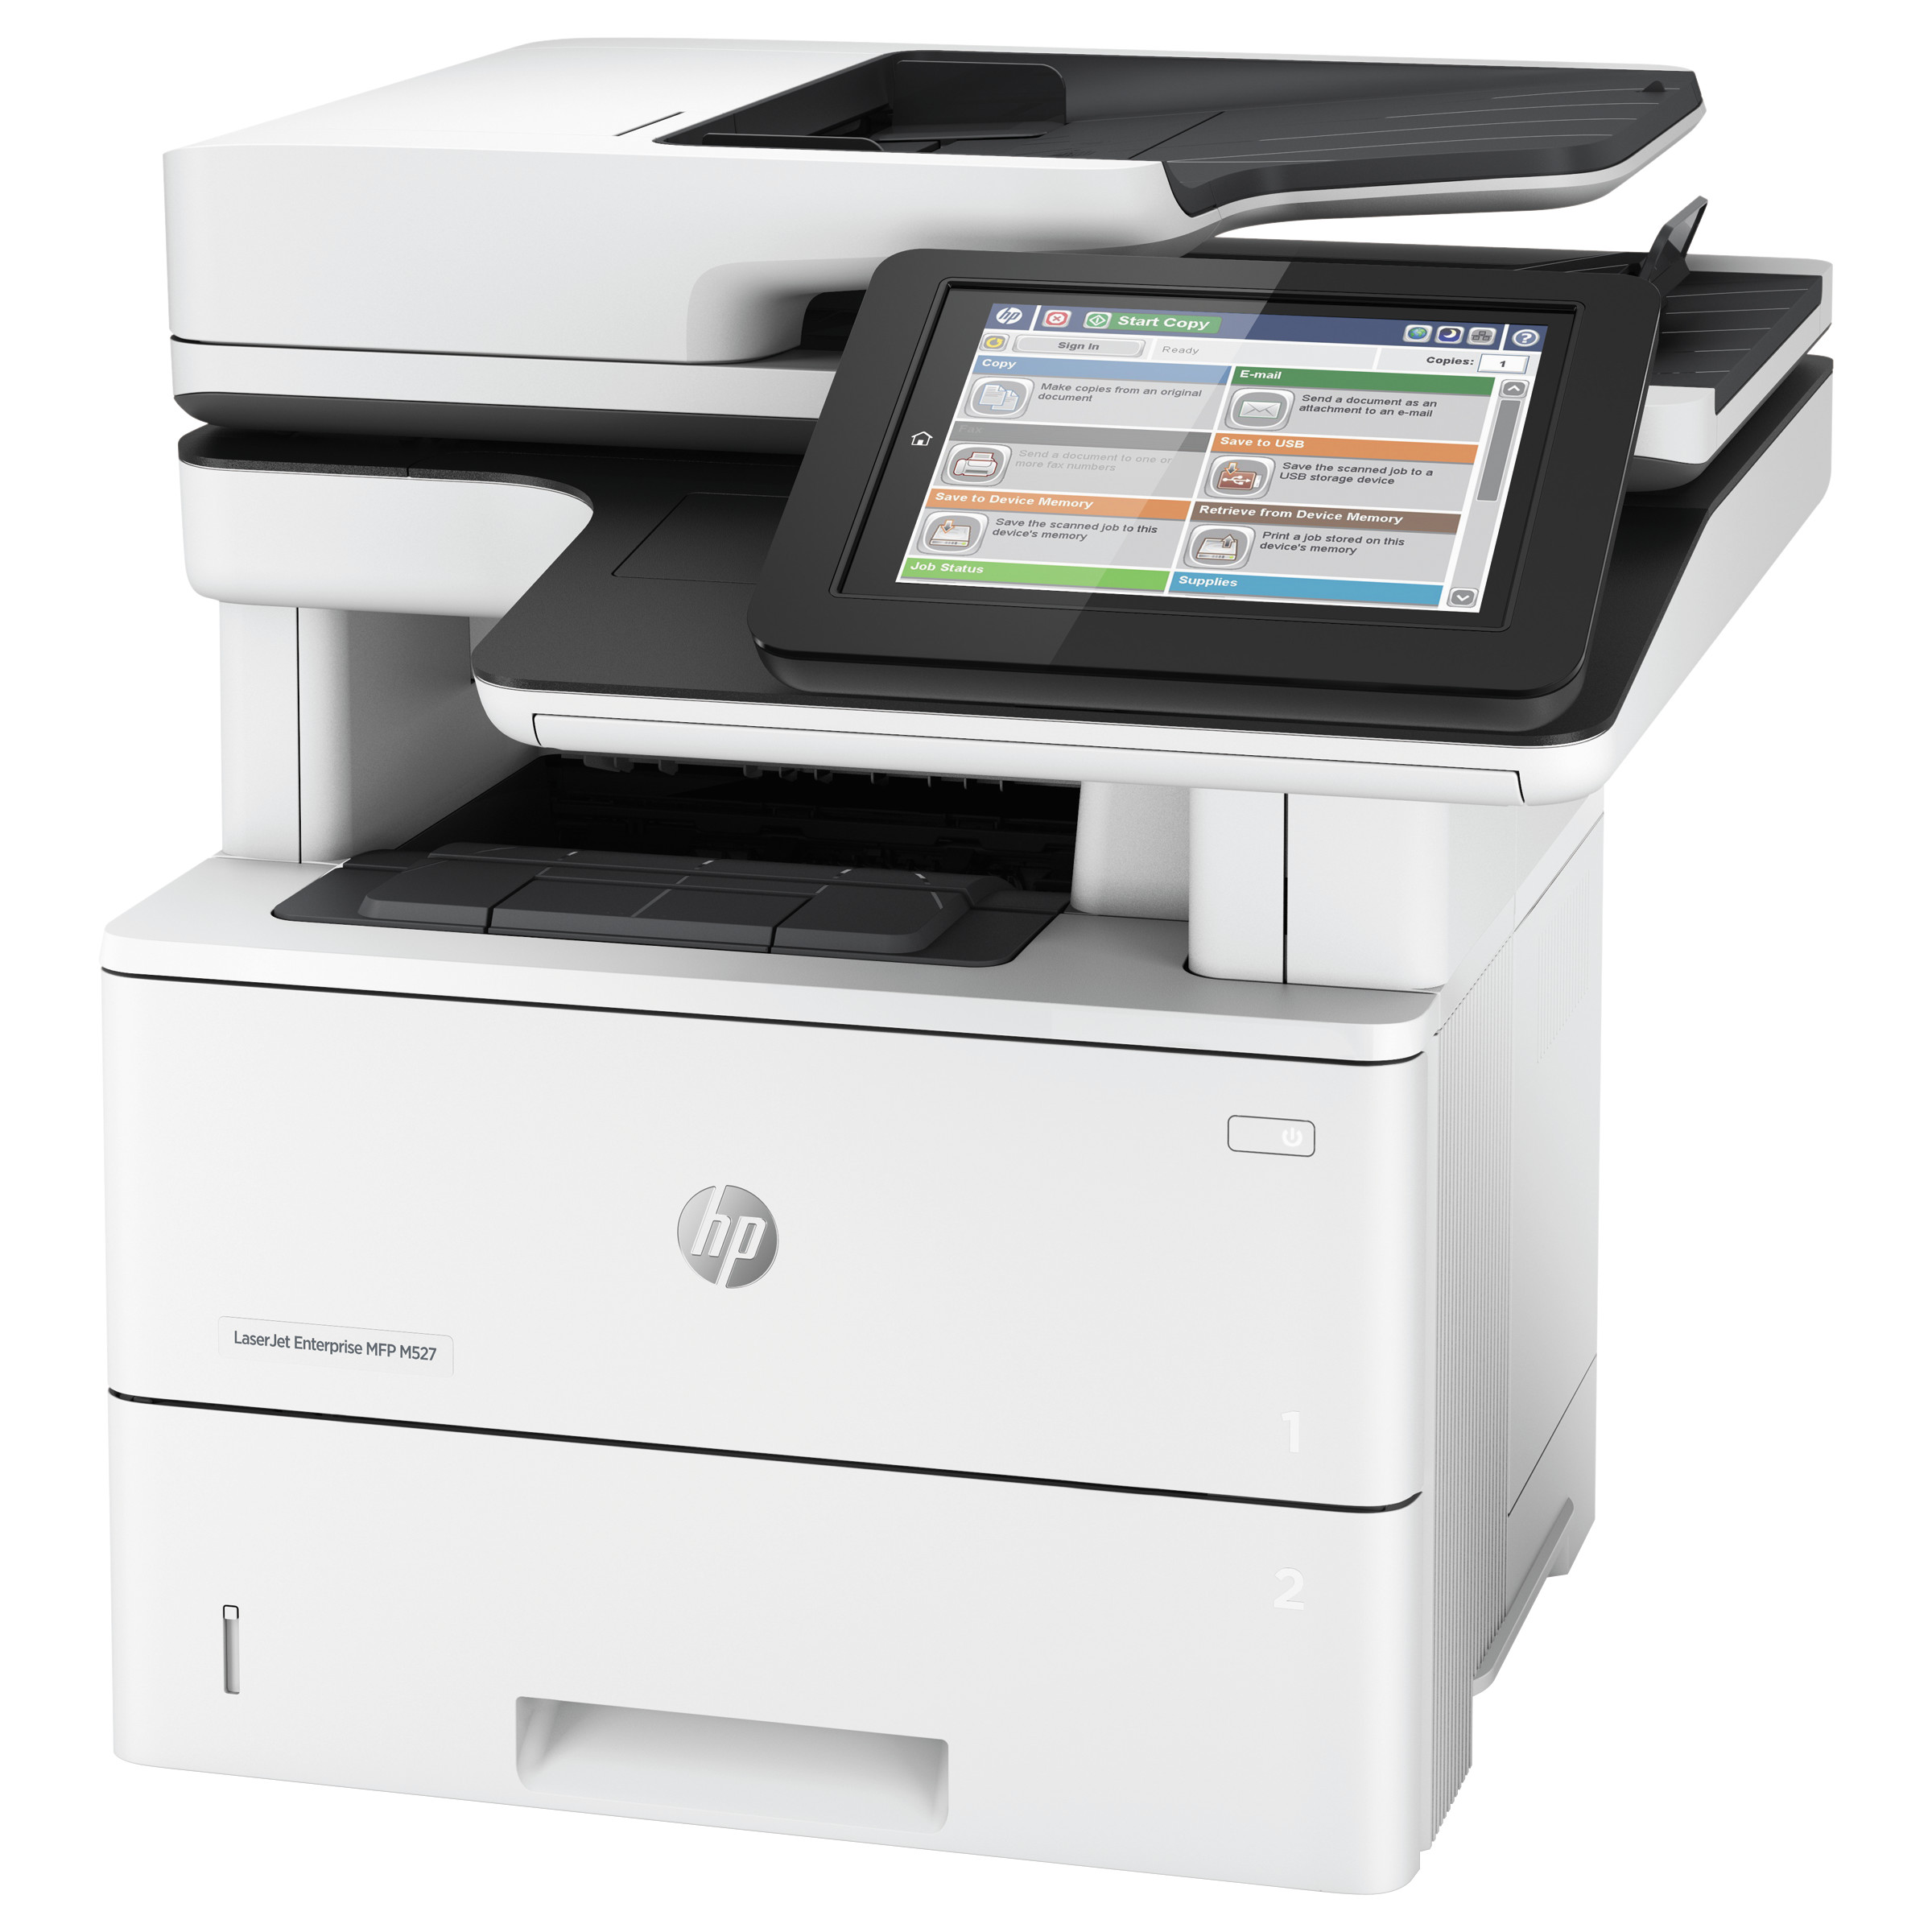 HP LaserJet Enterprise Flow MFP M527c Multifunction Printer, Copy/Fax/Print/Scan -HEWF2A81A